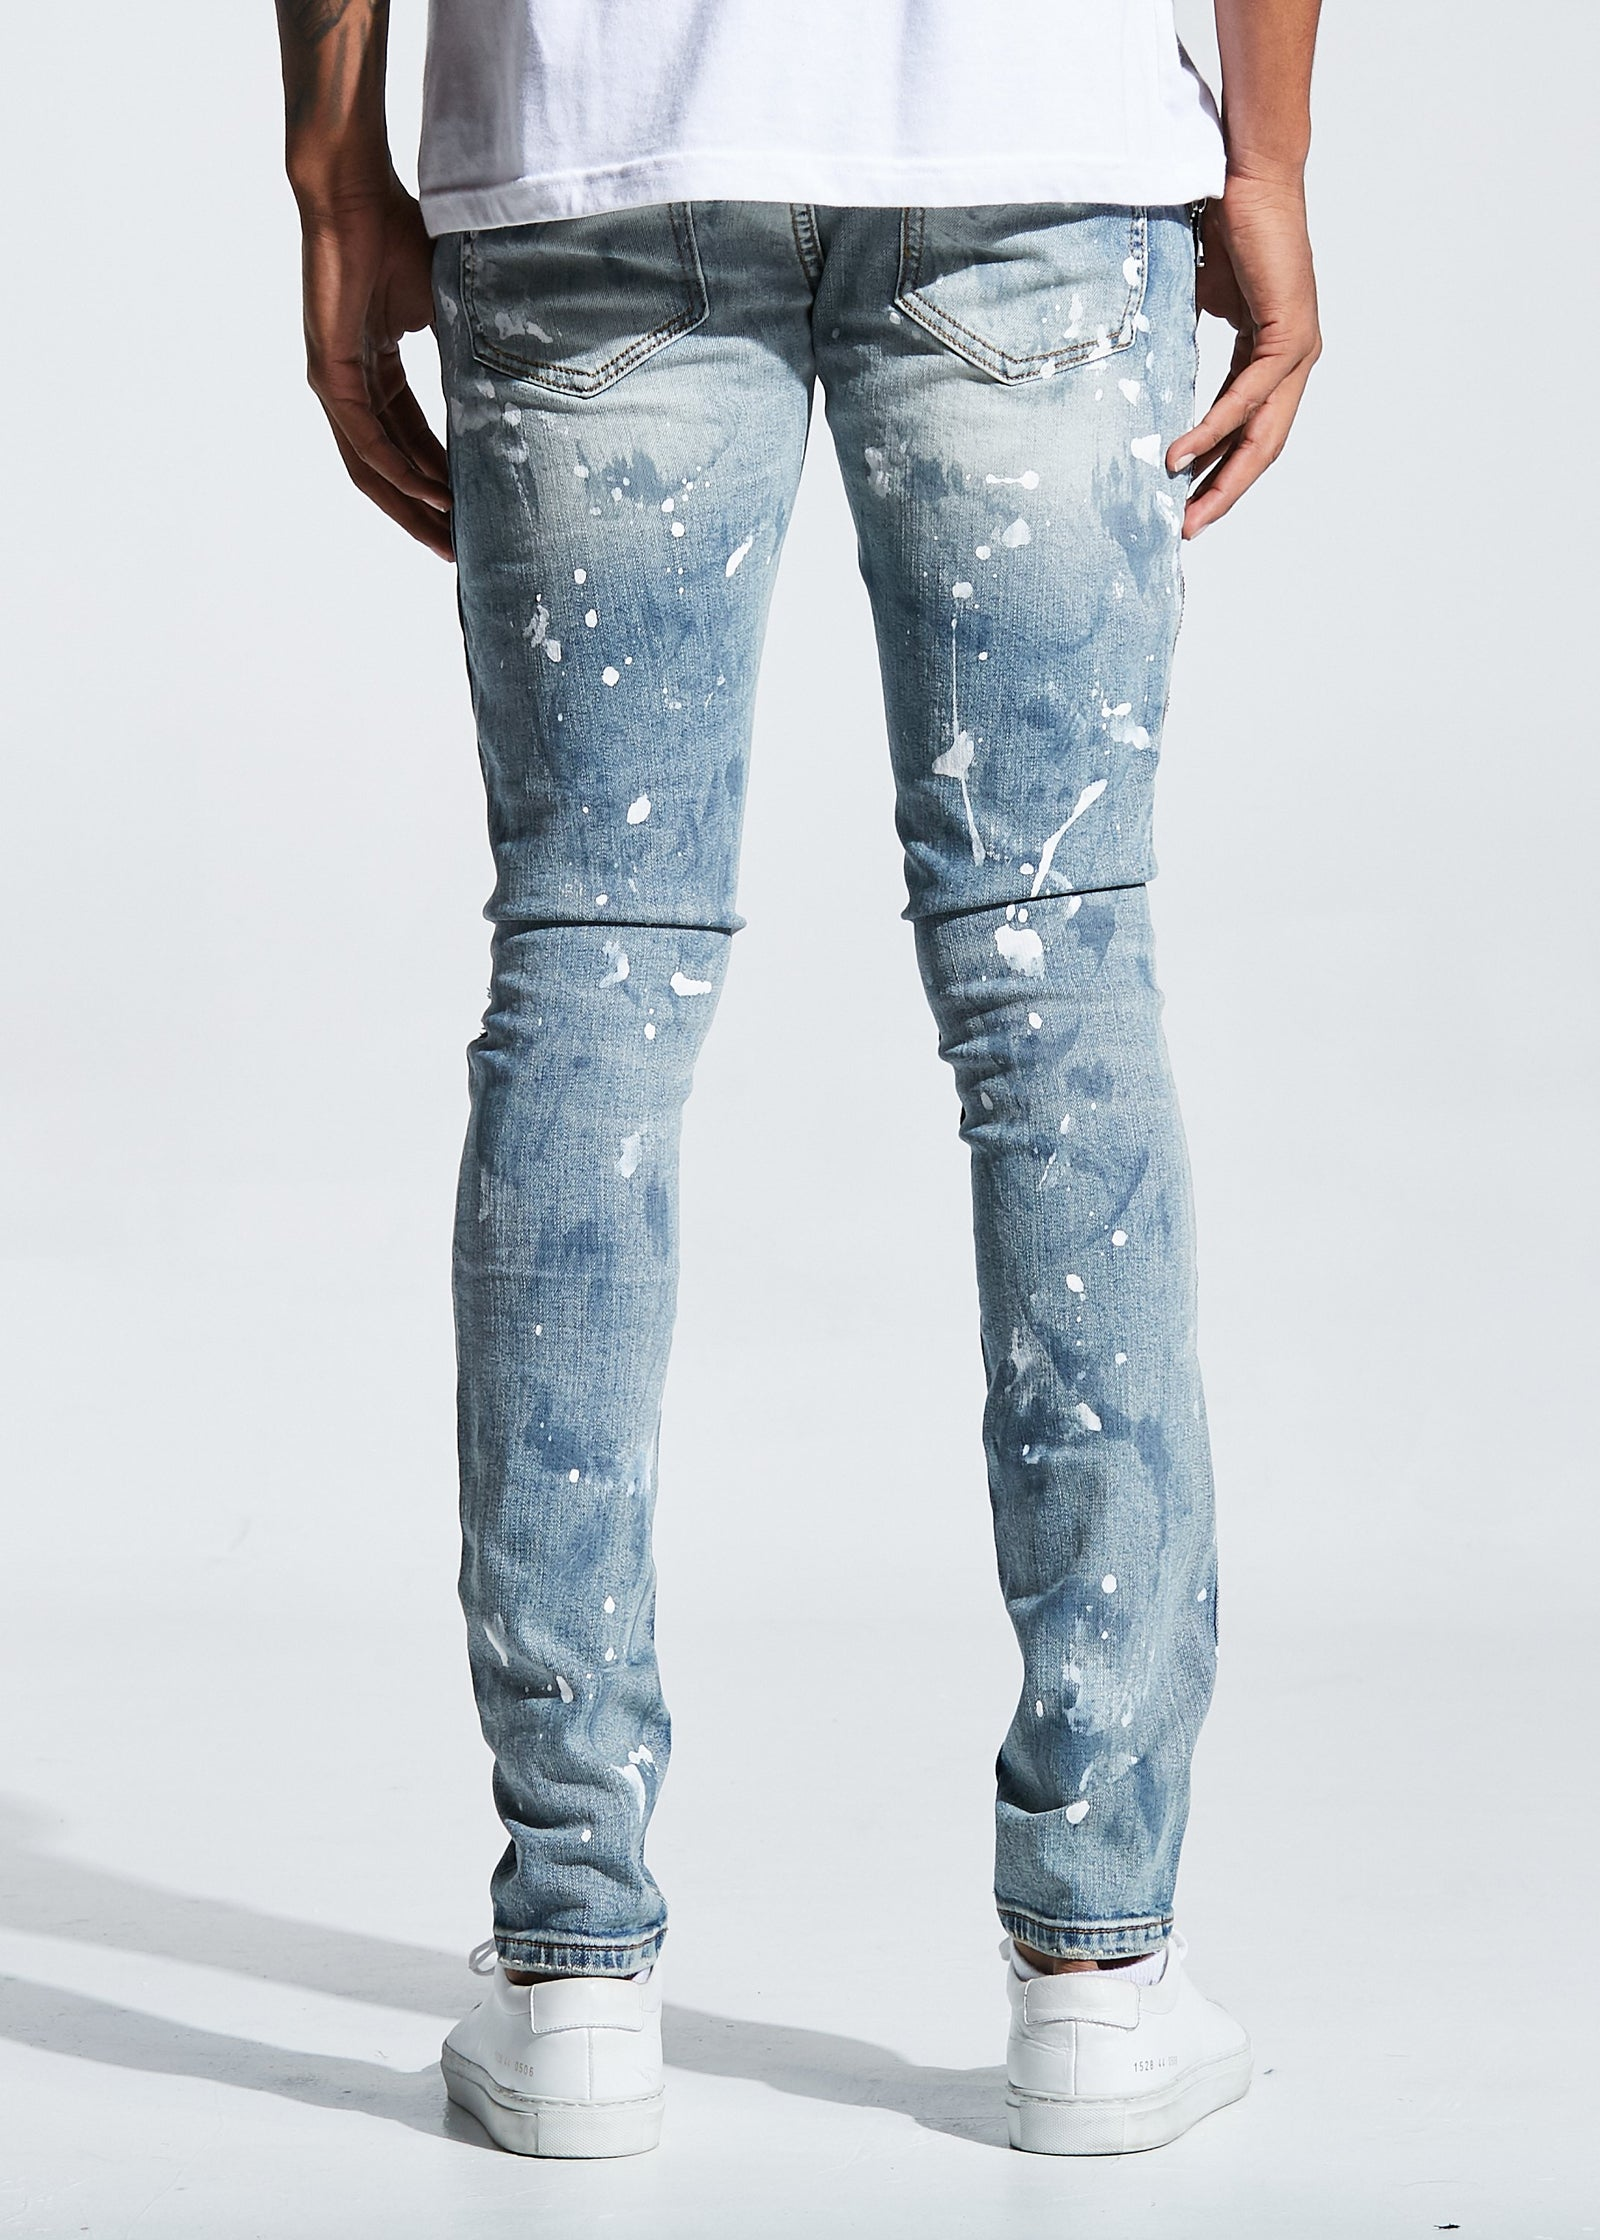 Colombo Denim (Blue Paint)